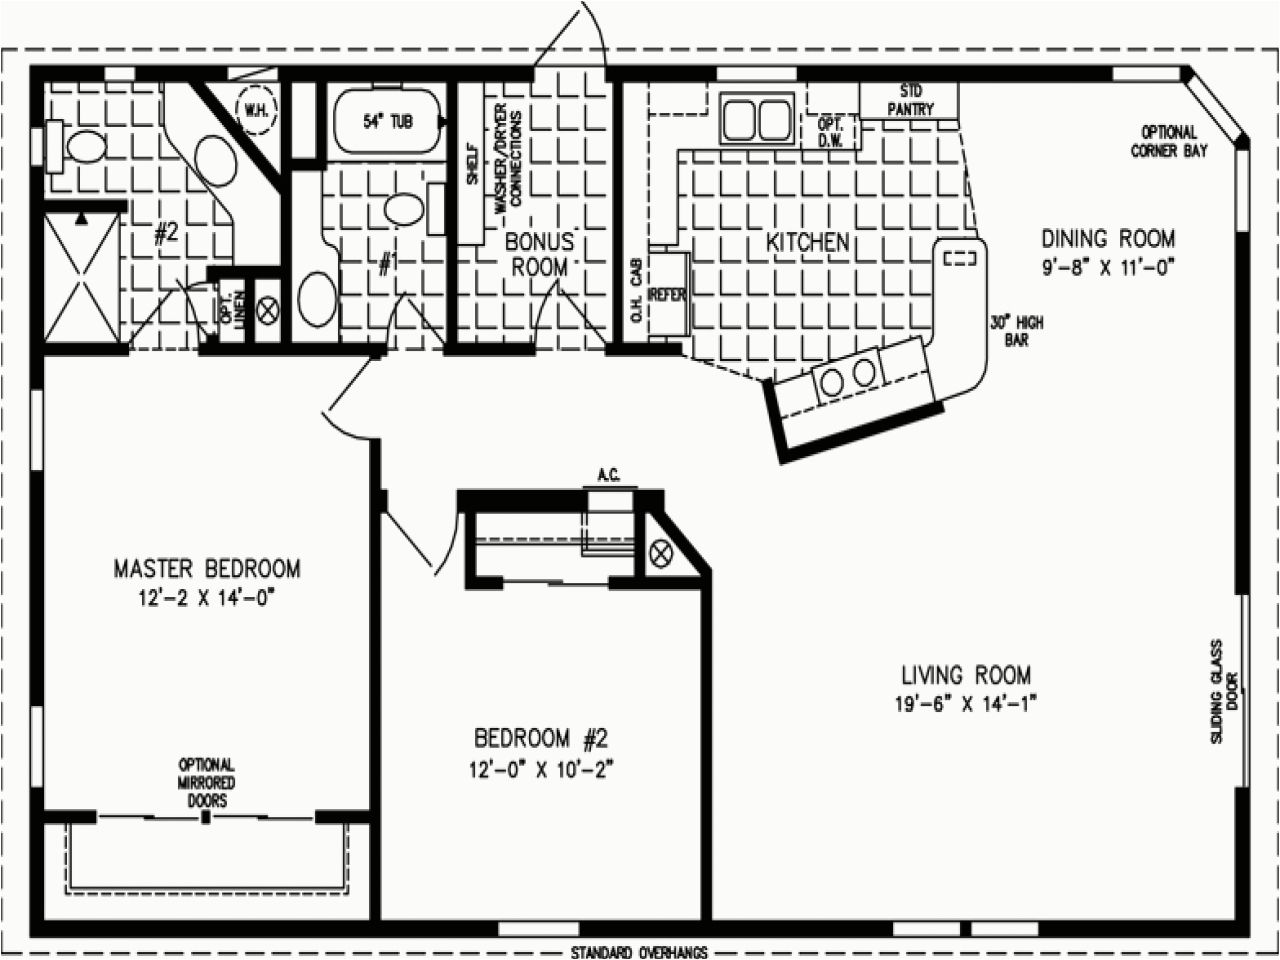 Awesome Modern Home Plans Under 1200 Sq Ft fine Modern Home Plans Under 1200 Sq Ft Modern Home Plans Under 1200 Sq Ft  Modern Home Plans Under 1200 Sq Ft  1200 Sq Ft Hous...